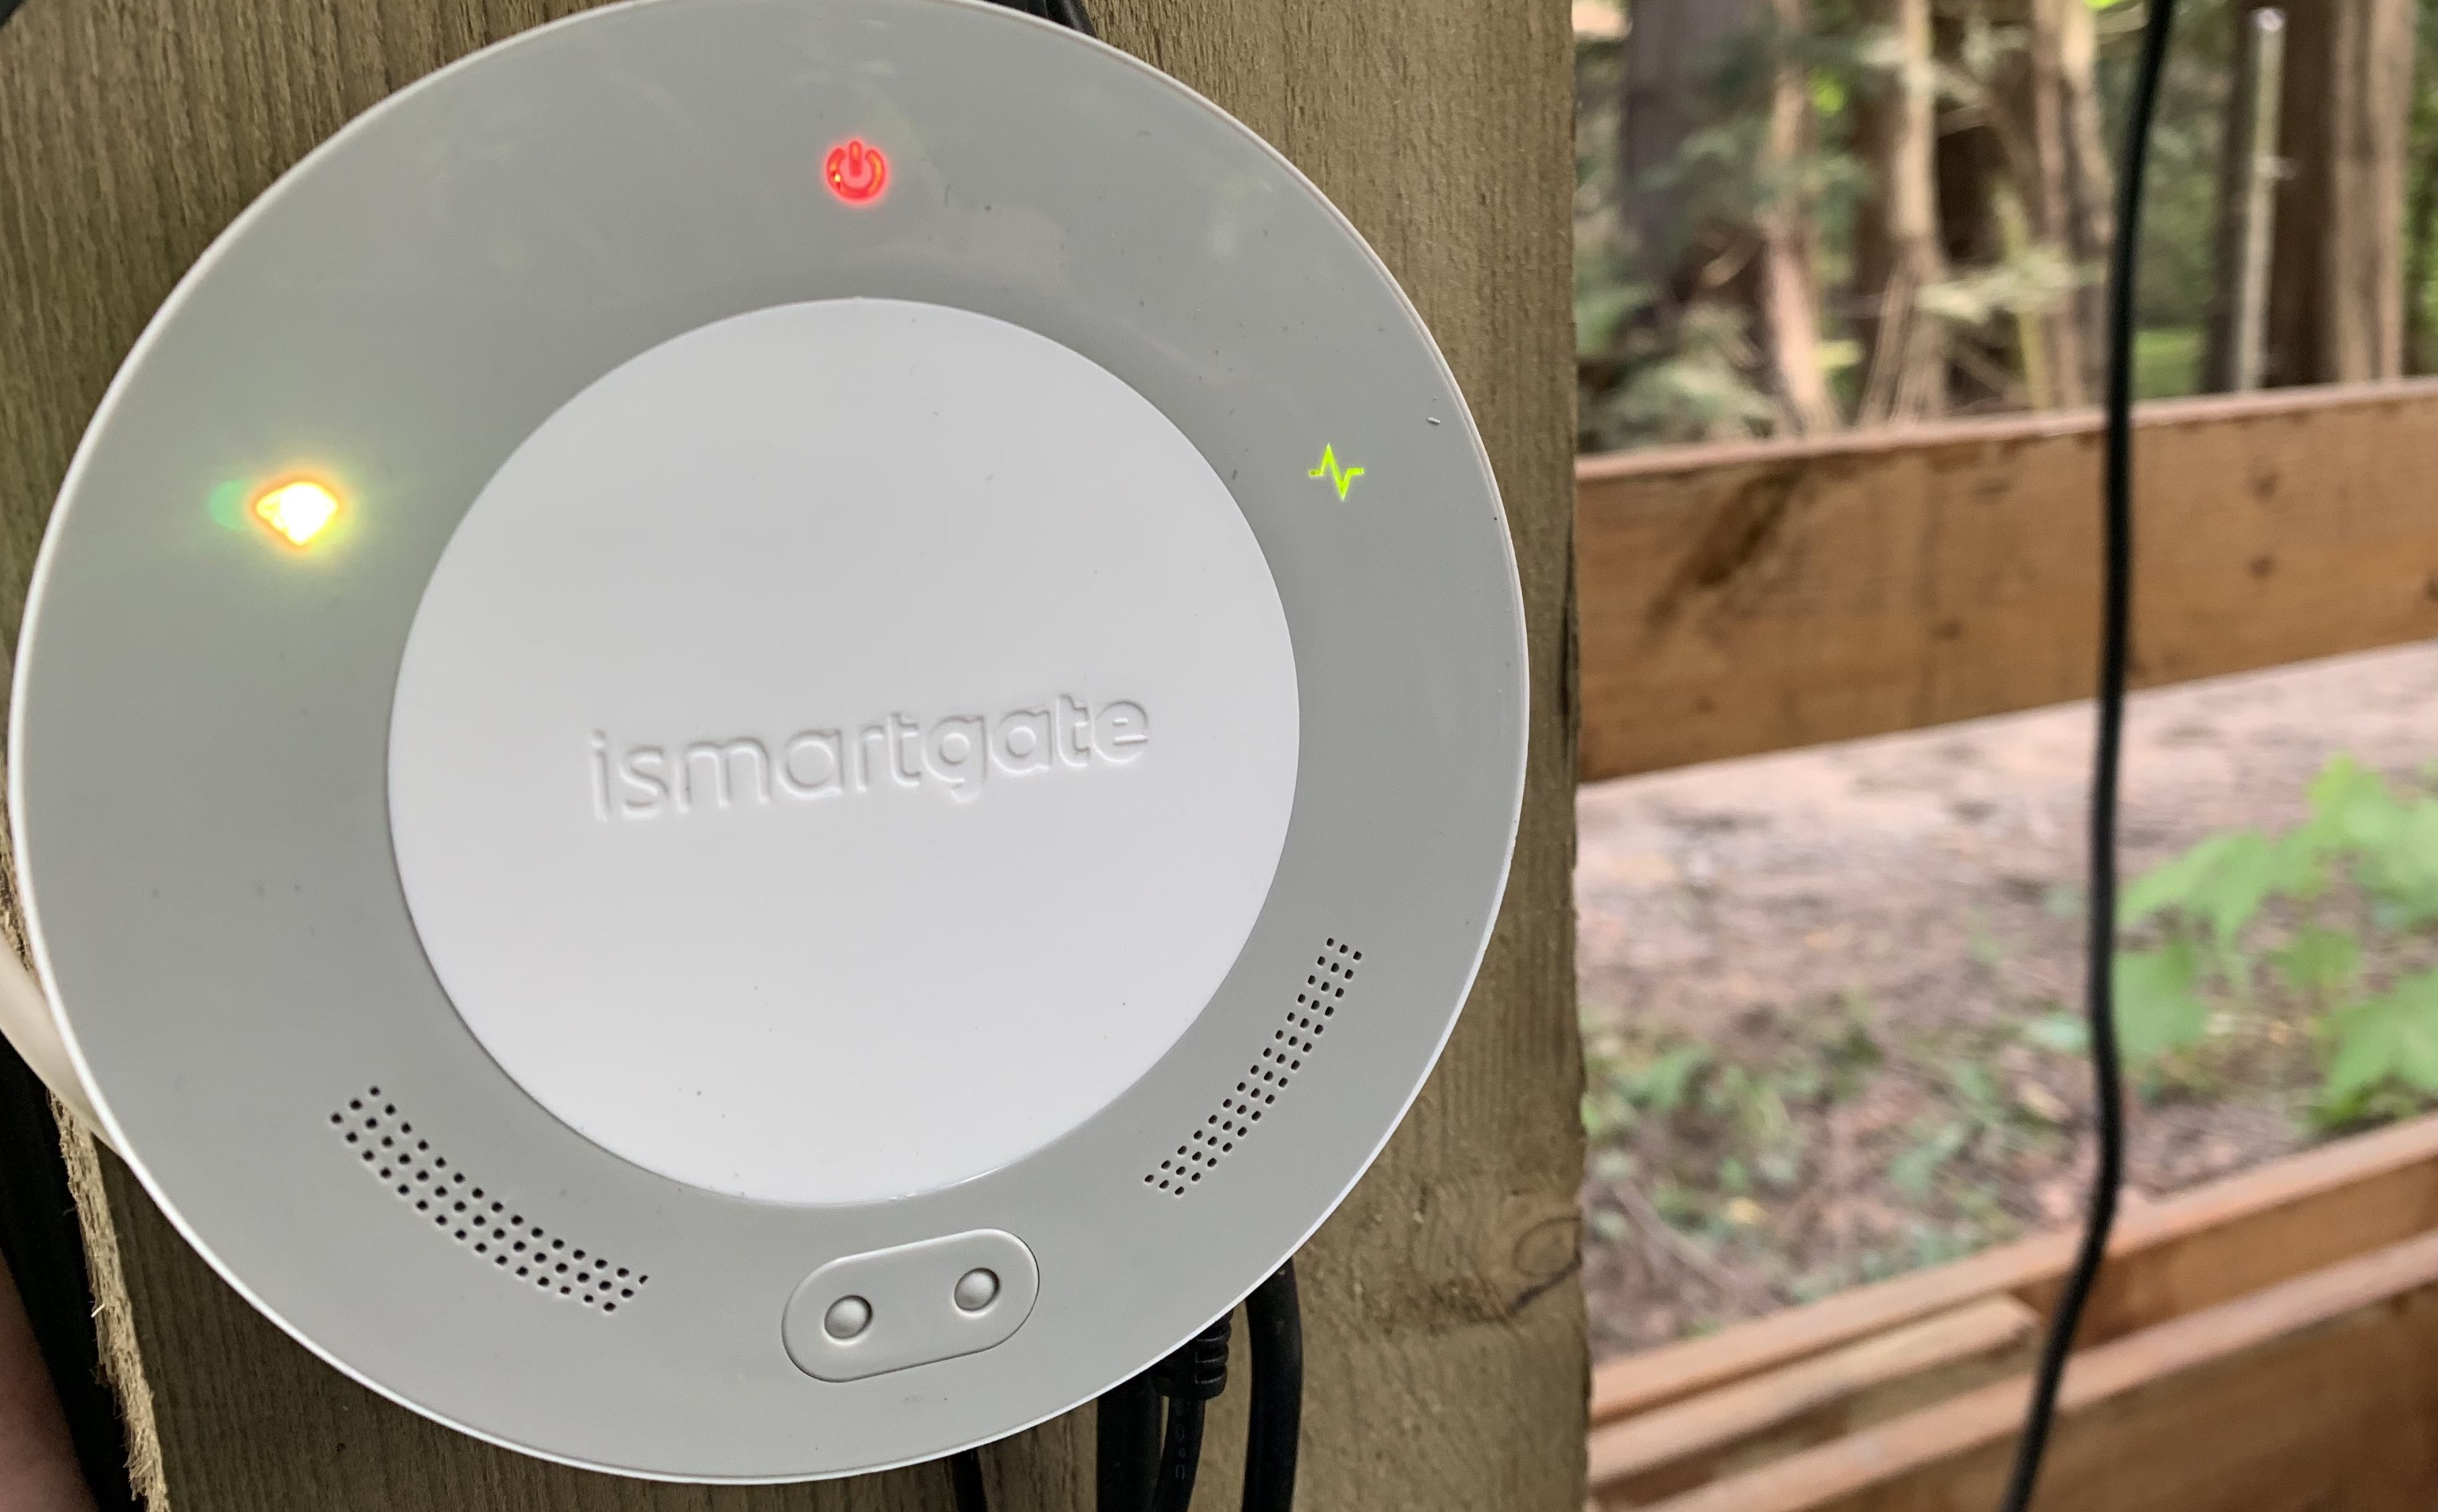 ismartgate LITE Wi-Fi connectivity